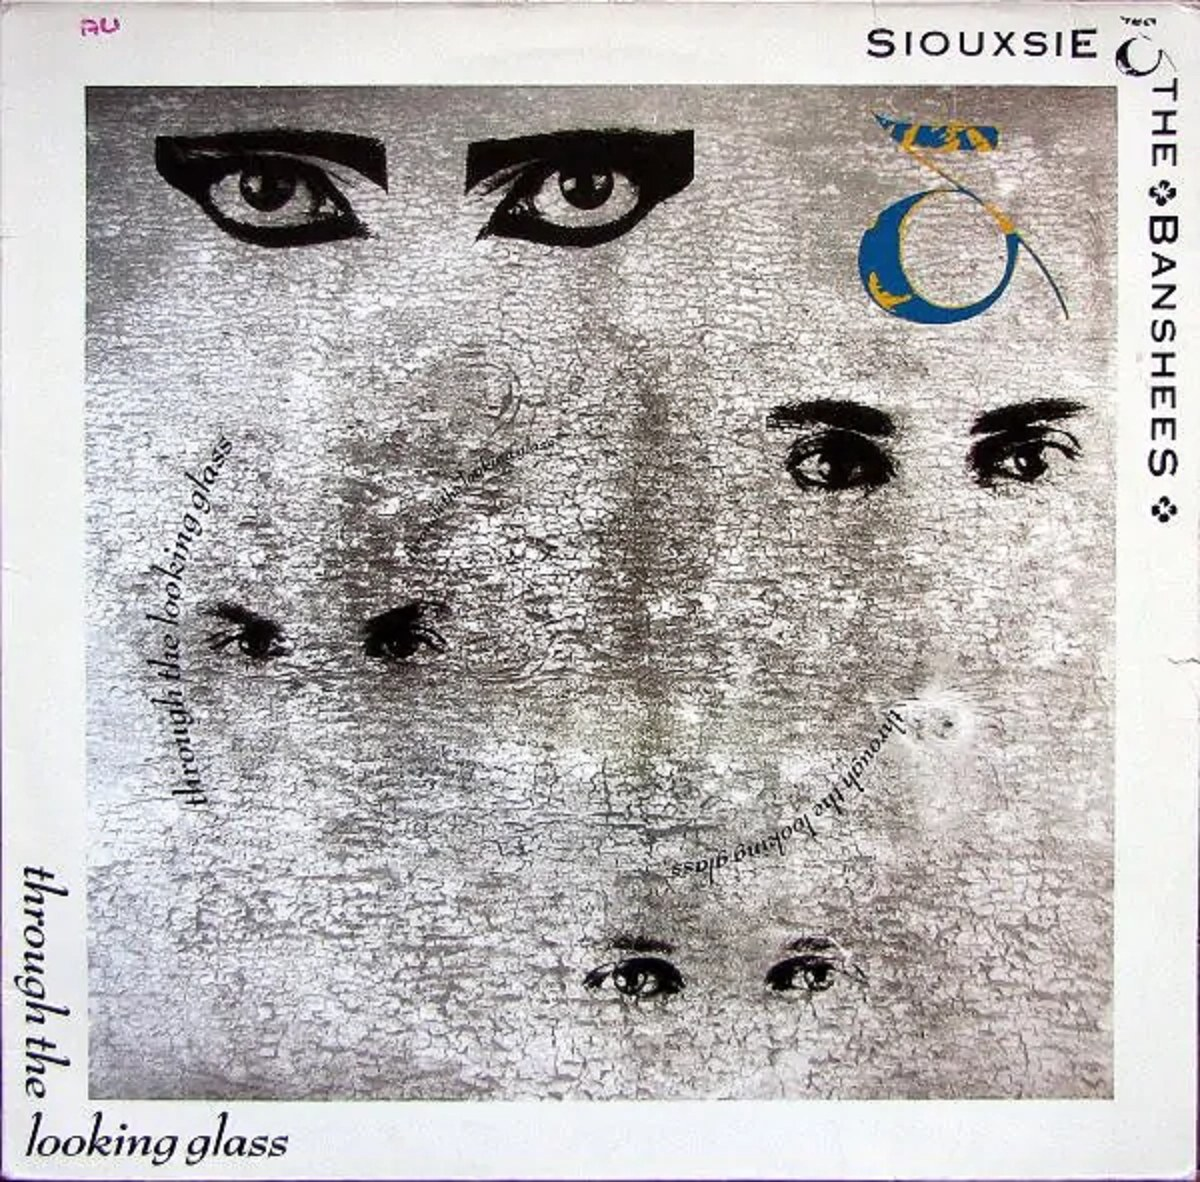 Siouxsie And The Banshees, альбом «Through the Looking Glass» (1987)